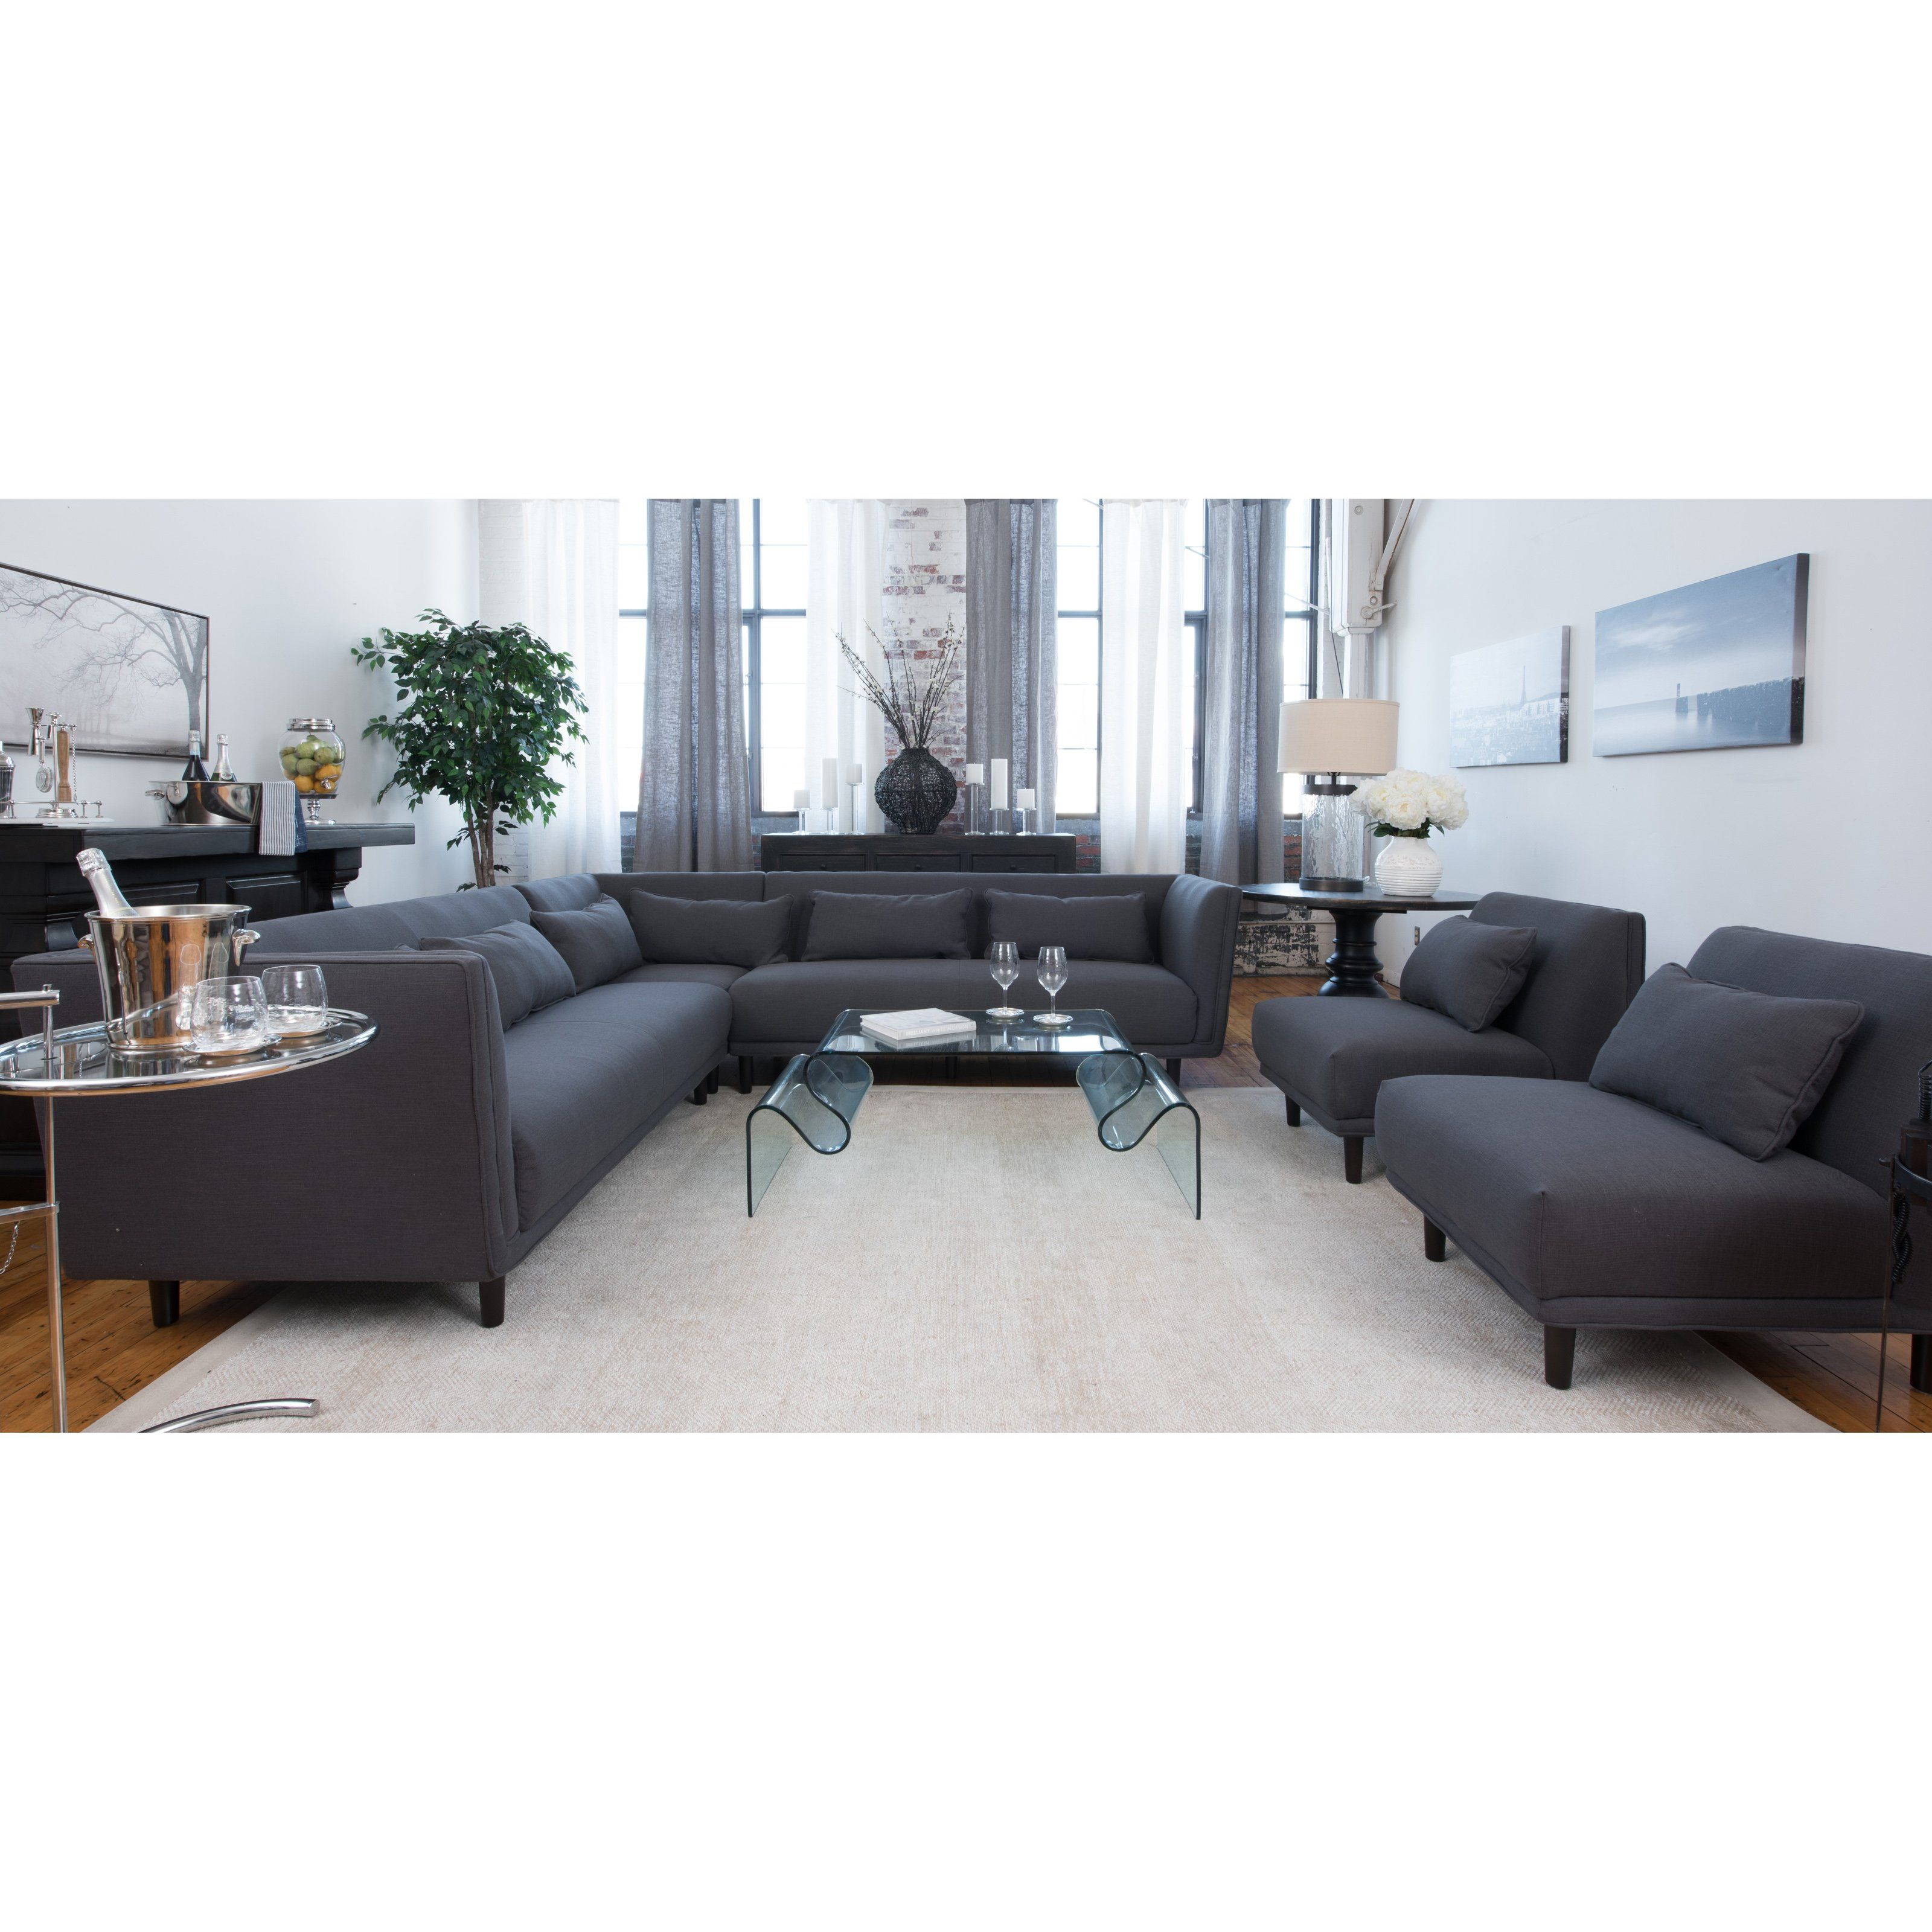 Manhattan Fabric Collection 3 Piece Dual Loveseat Sectional and